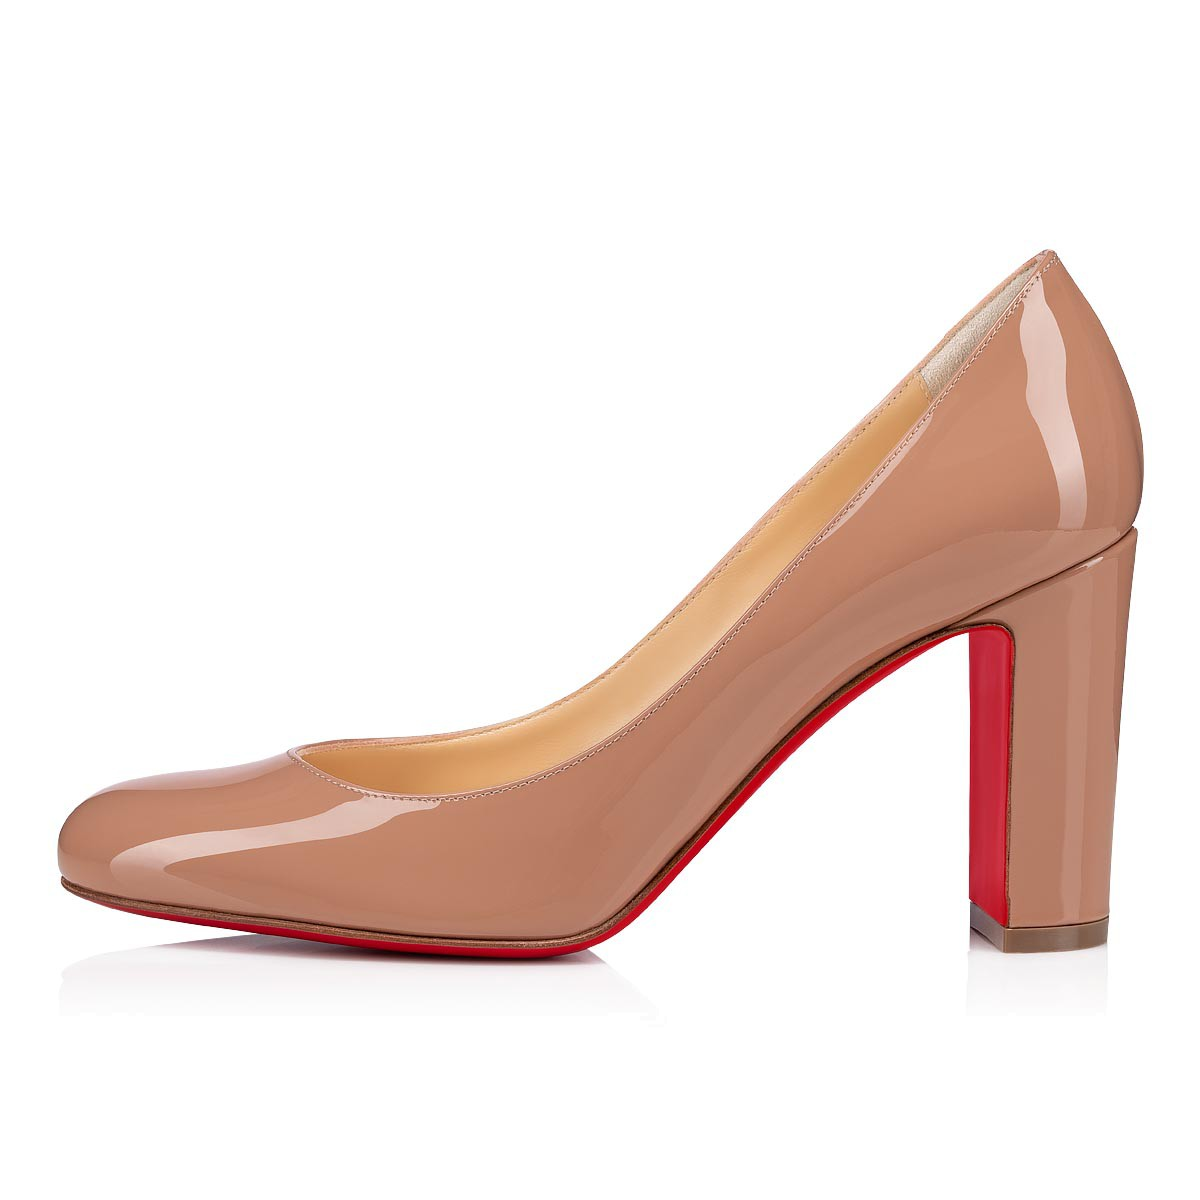 NEW VERY PRIVE 100 Nude Patent Leather - Women Shoes